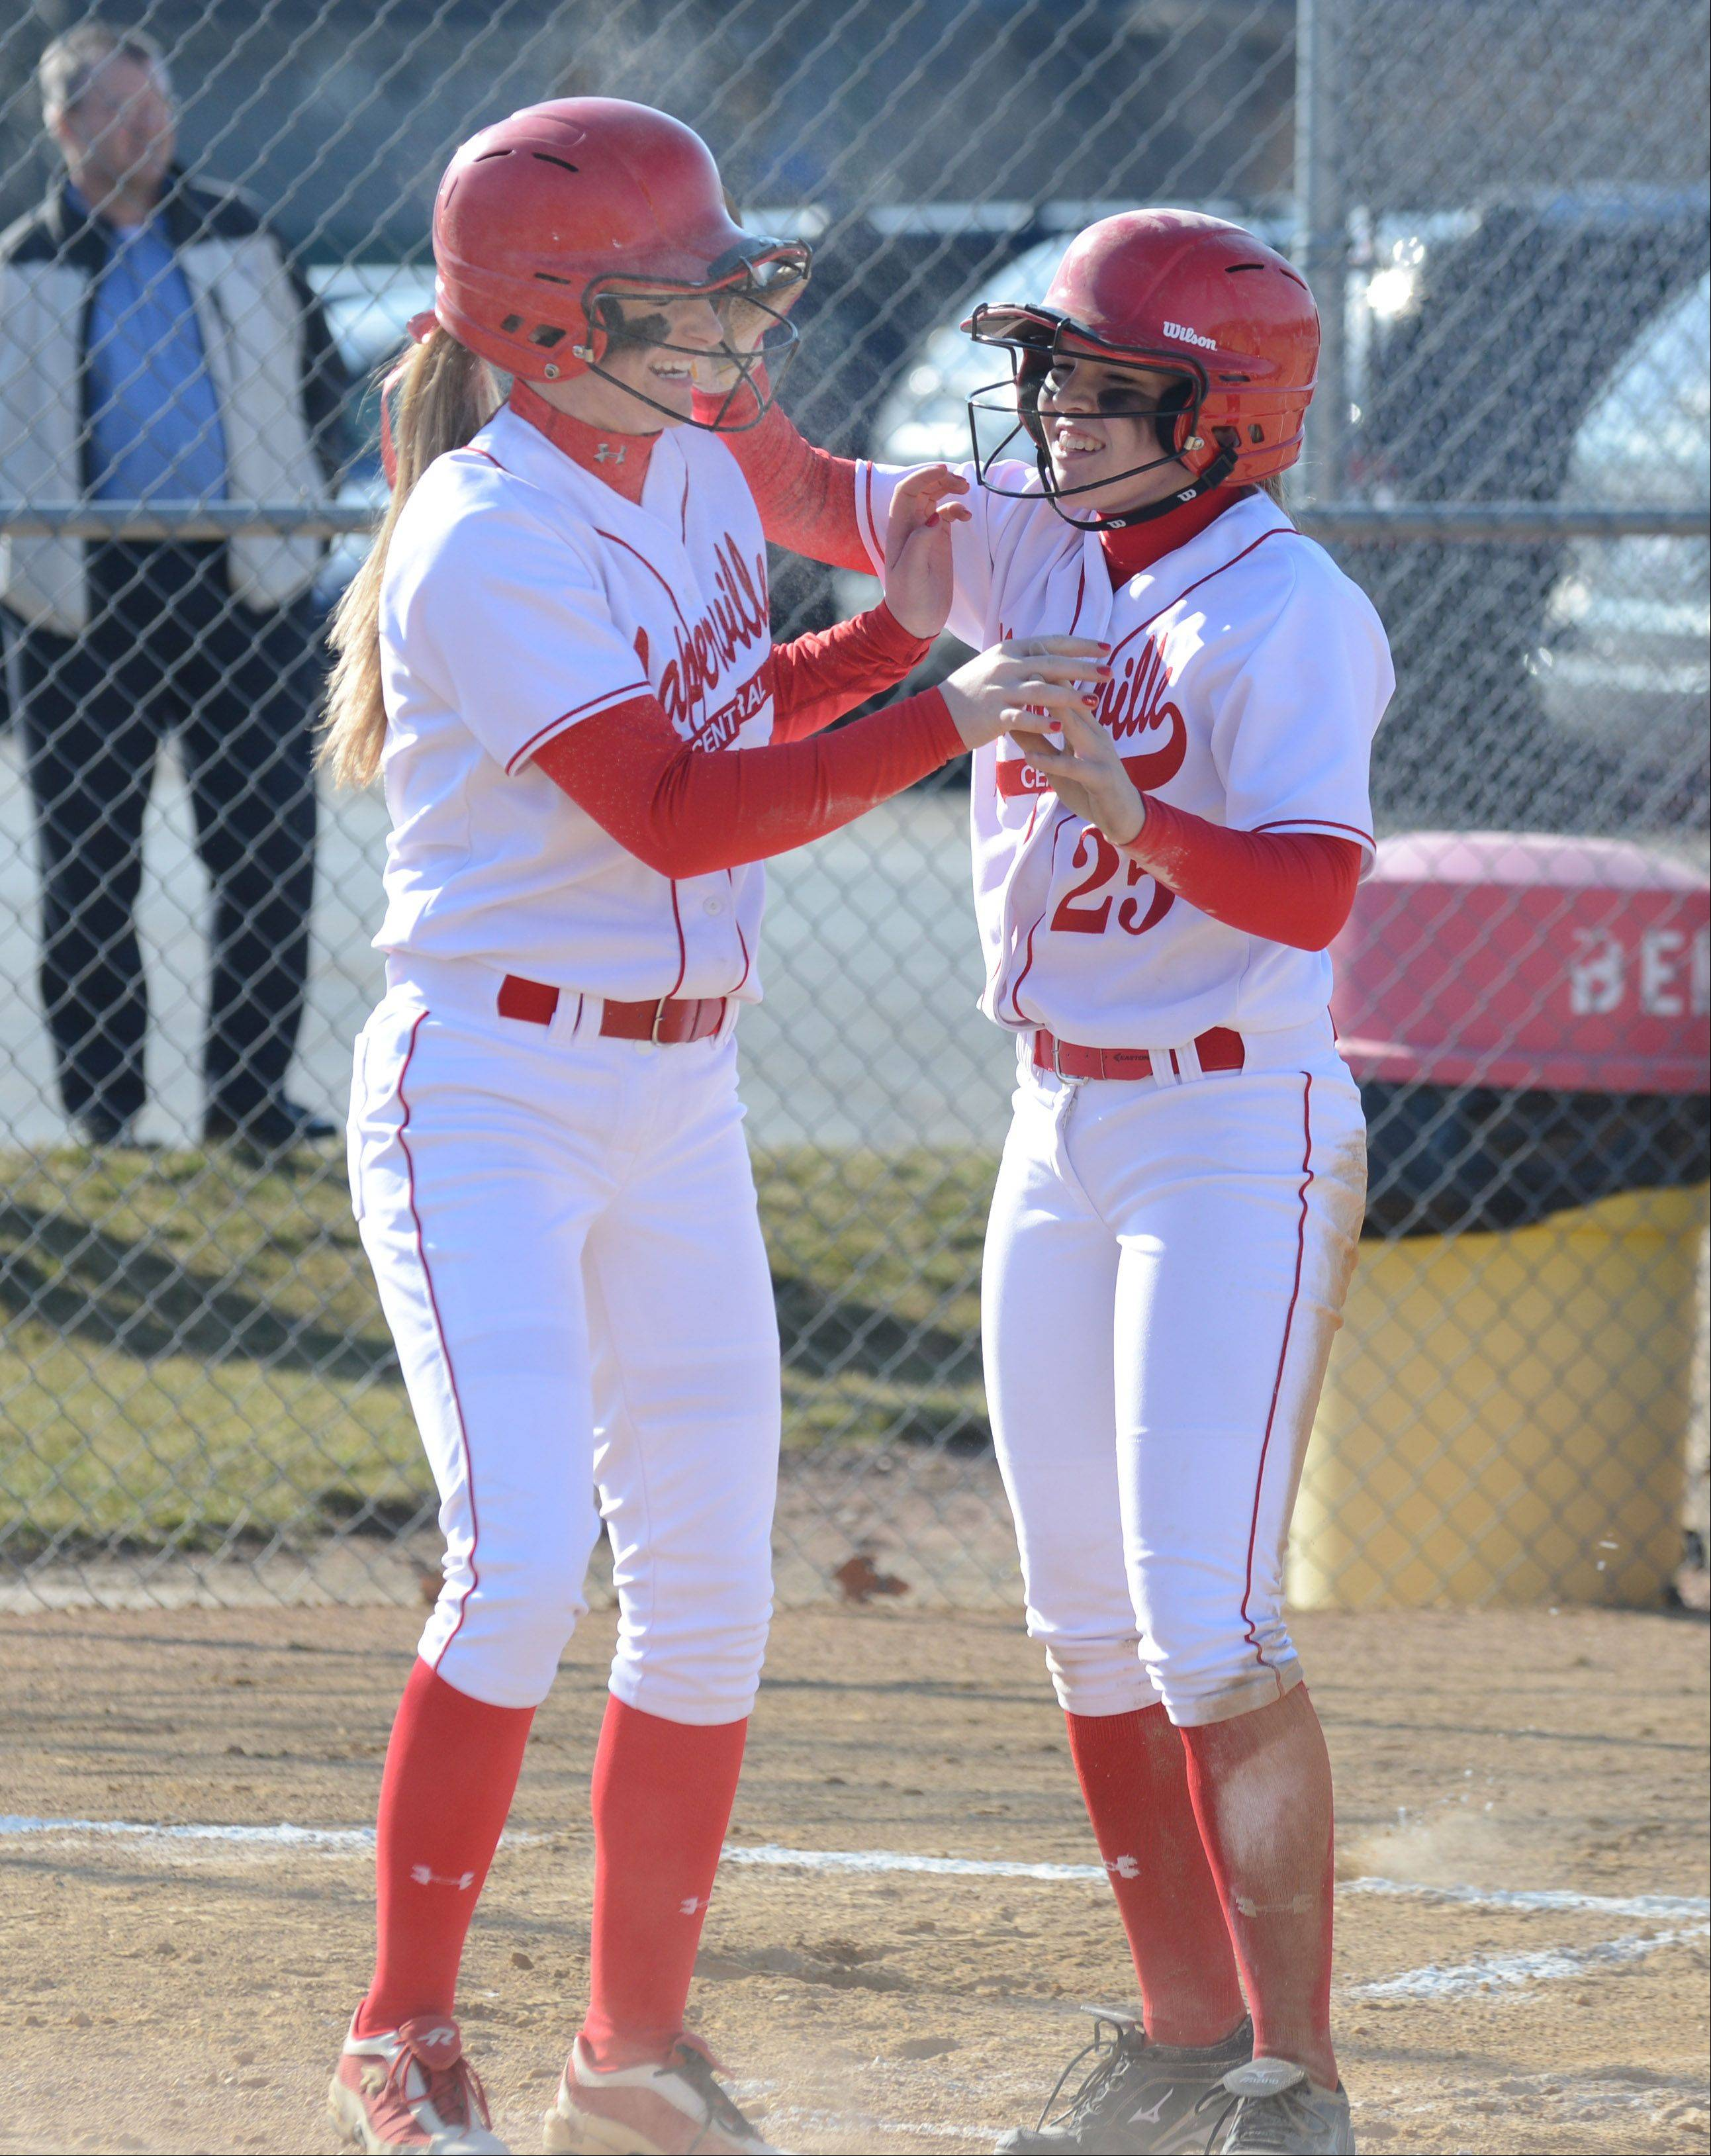 Megan Nerger,left, and Maddi Doane of Naperville Central celebrate a run during the Naperville Central at Benet softball Thursday in Lisle.